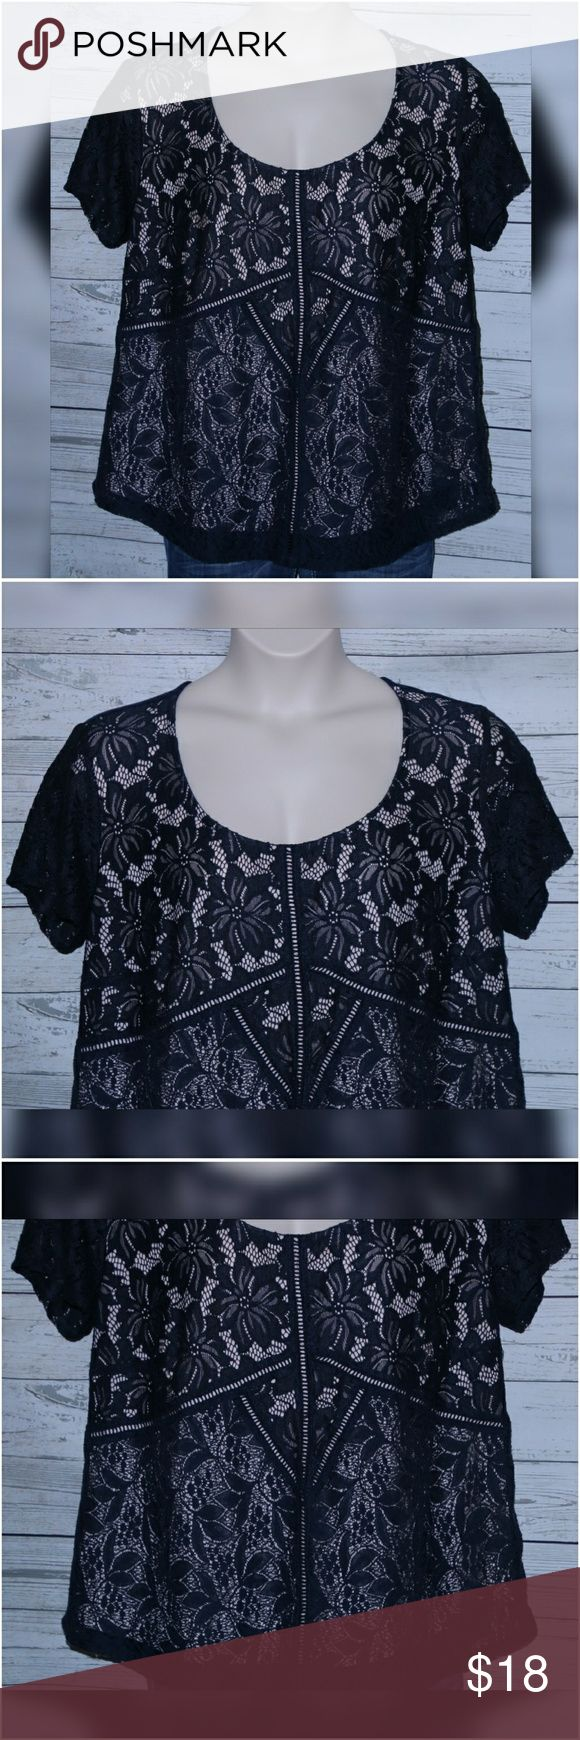 """Maurices Plus Size 1 1X Navy Blue Lace Top Maurices Women's Plus Size 1 1X Navy Blue Sheer Lined Lace Top Short Sleeve Shirt  All measurements are approximate and  taken unstretched and laying flat.   Chest: 45""""  Length: 26""""  Sleeve: 10""""   EUC no rips or stains-Worn once  Pants NOT included.   If you have any questions, please don't  hesitate to send me a message.  Please feel free to check out the other  items listed in my store.   Note to Buyers:  **Colors may vary slightly from photos of…"""